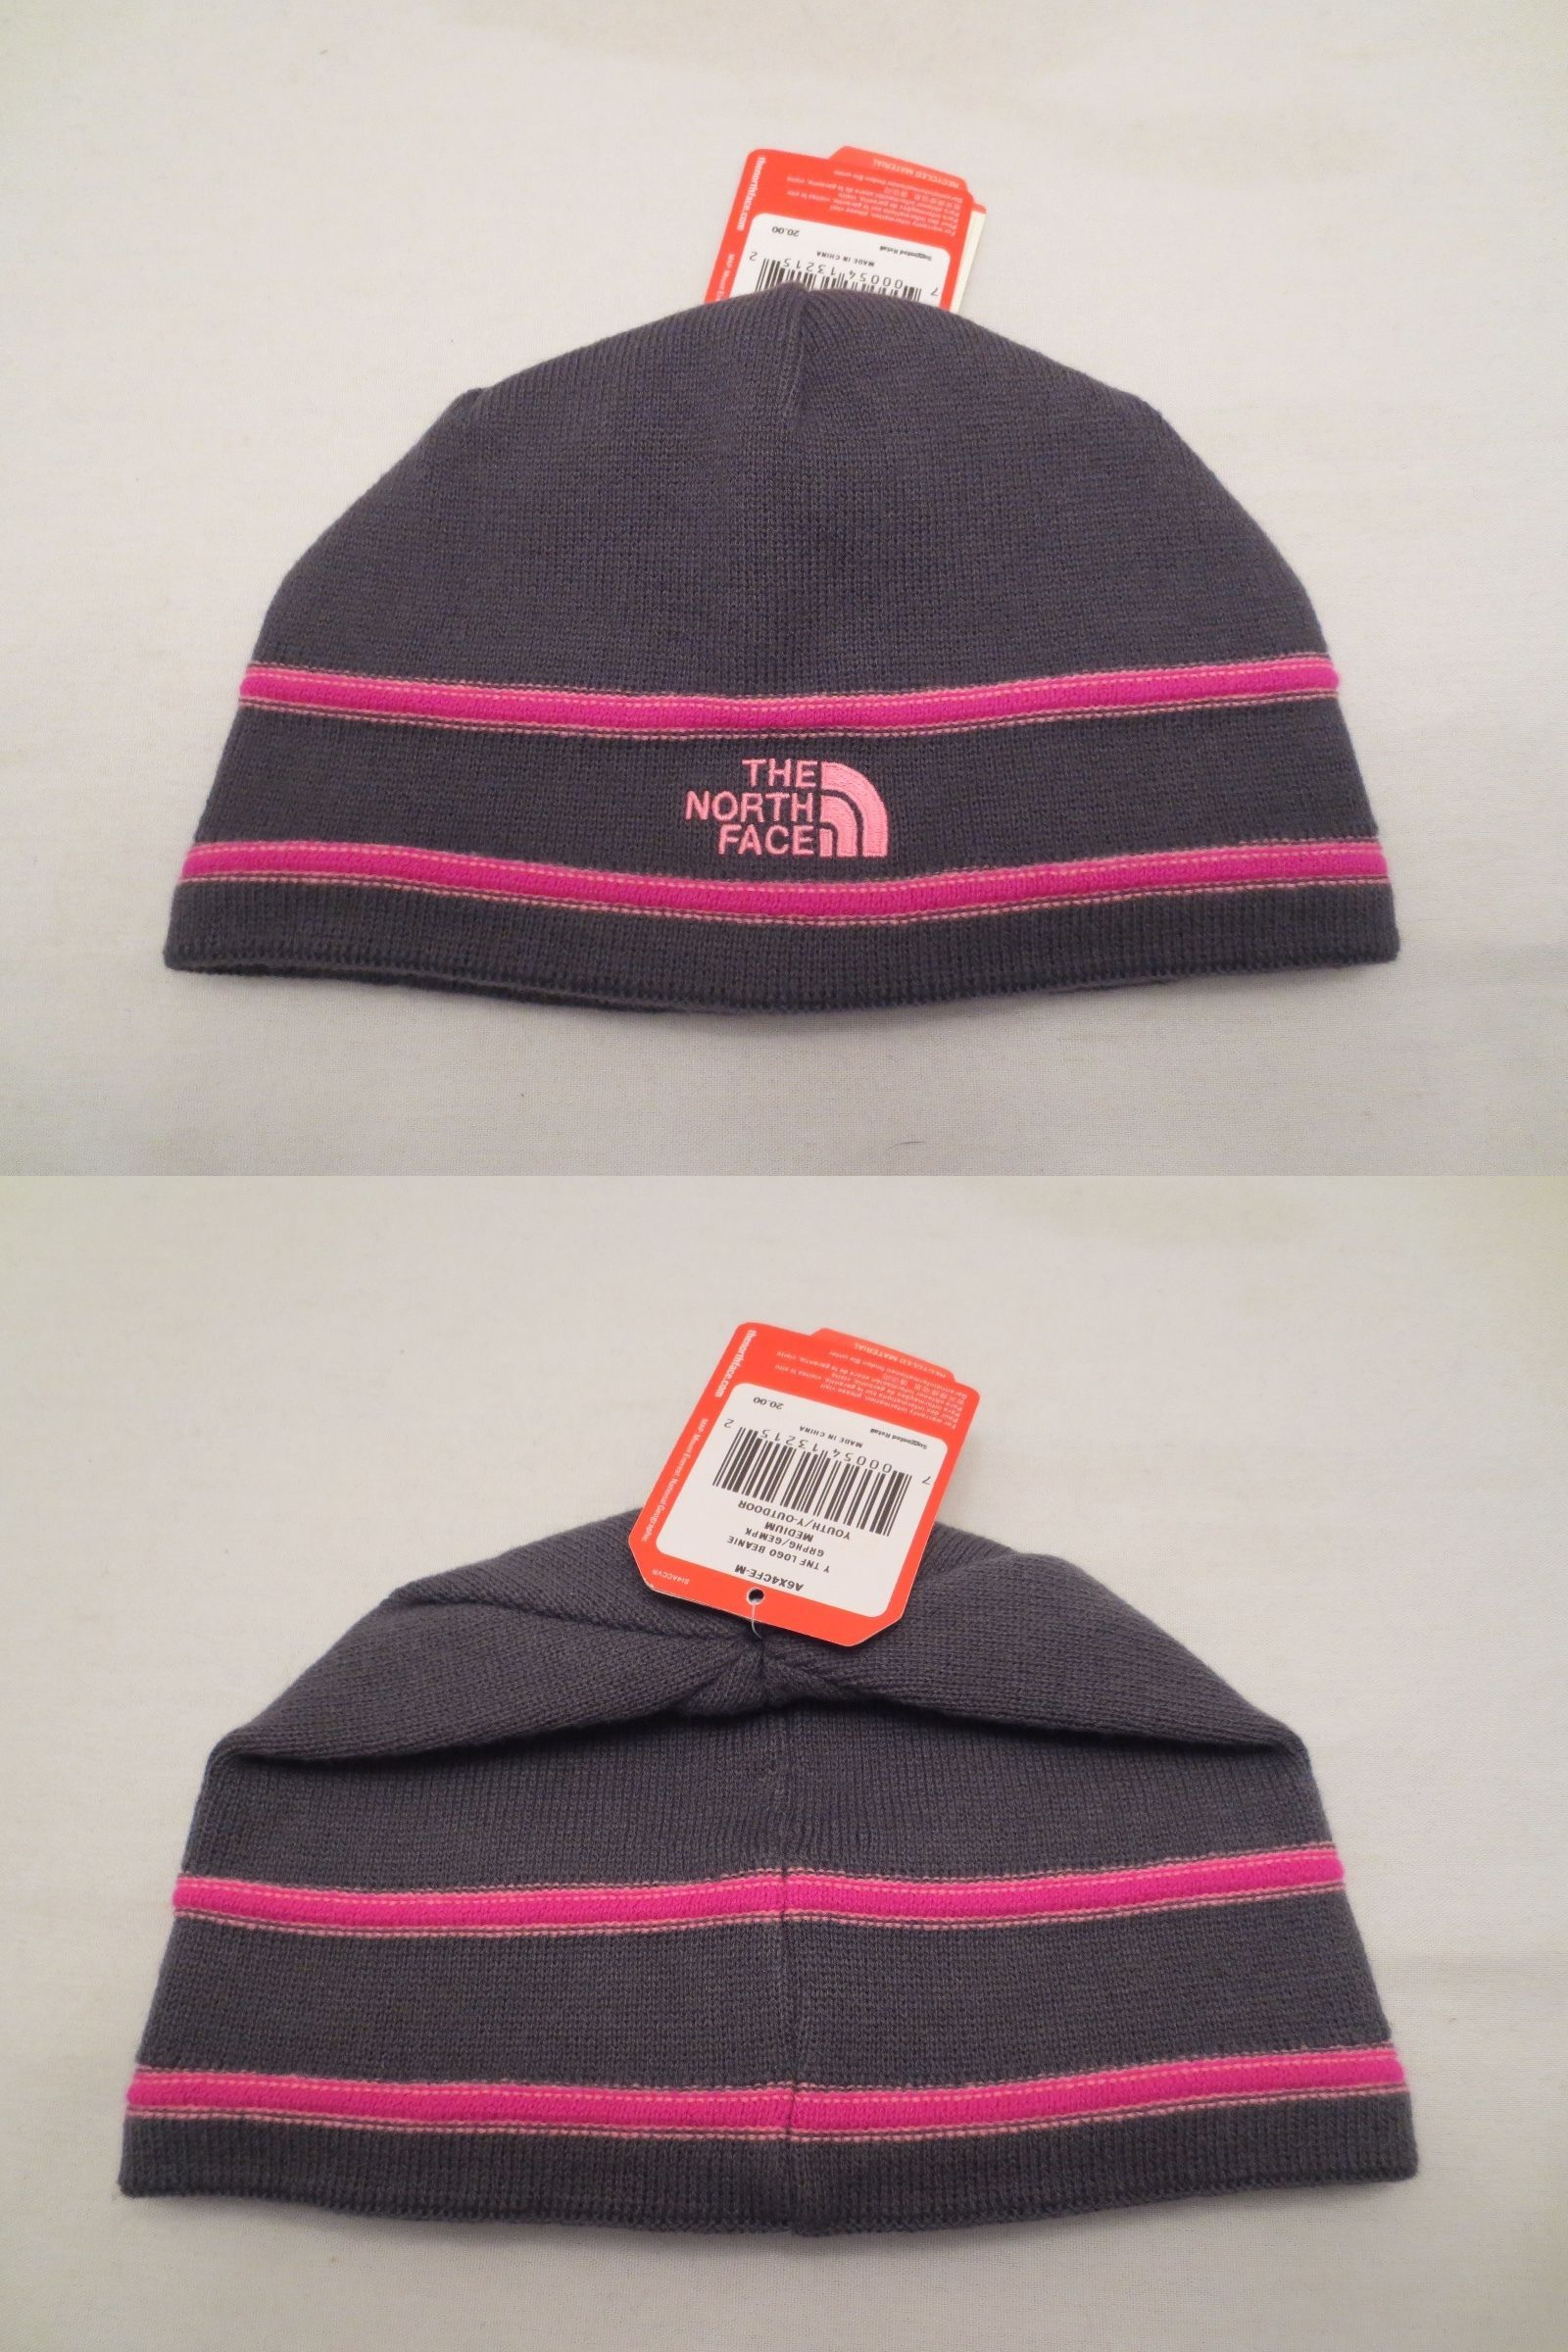 d9a17956ff9 Other Kids Clothing and Accs 175640  The North Face Logo Beanie Tnf  Graphite Grey Pink